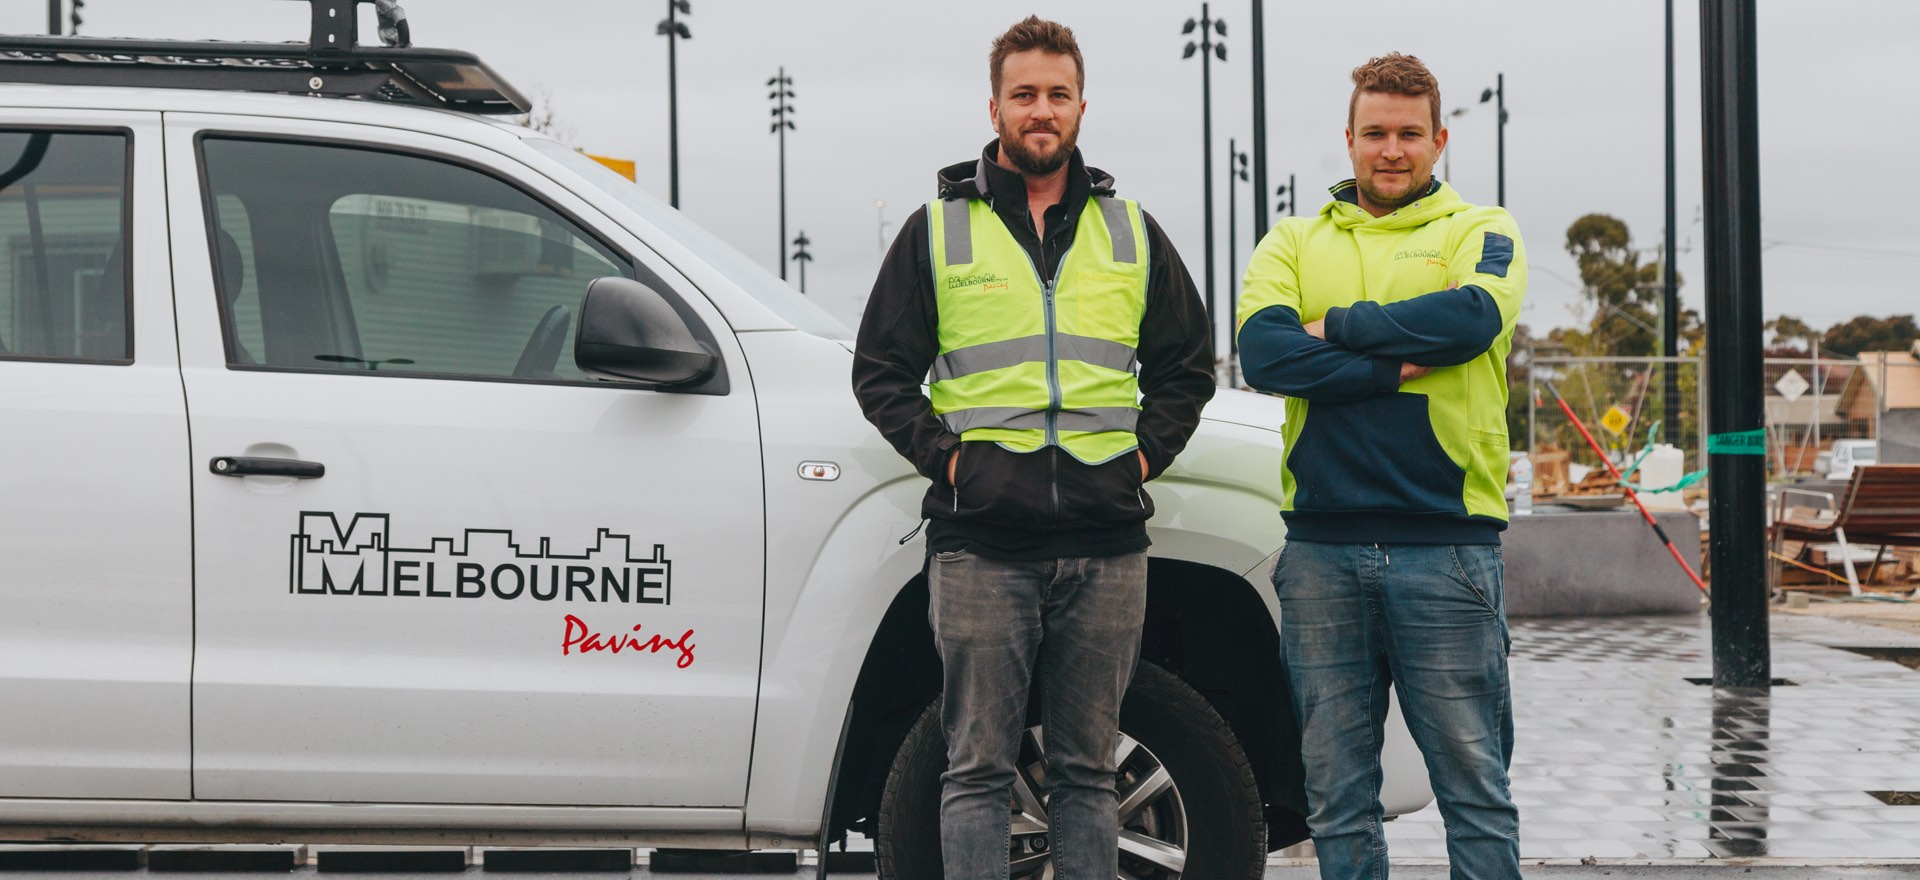 Melbourne Paving: Laying The Foundation For Growth